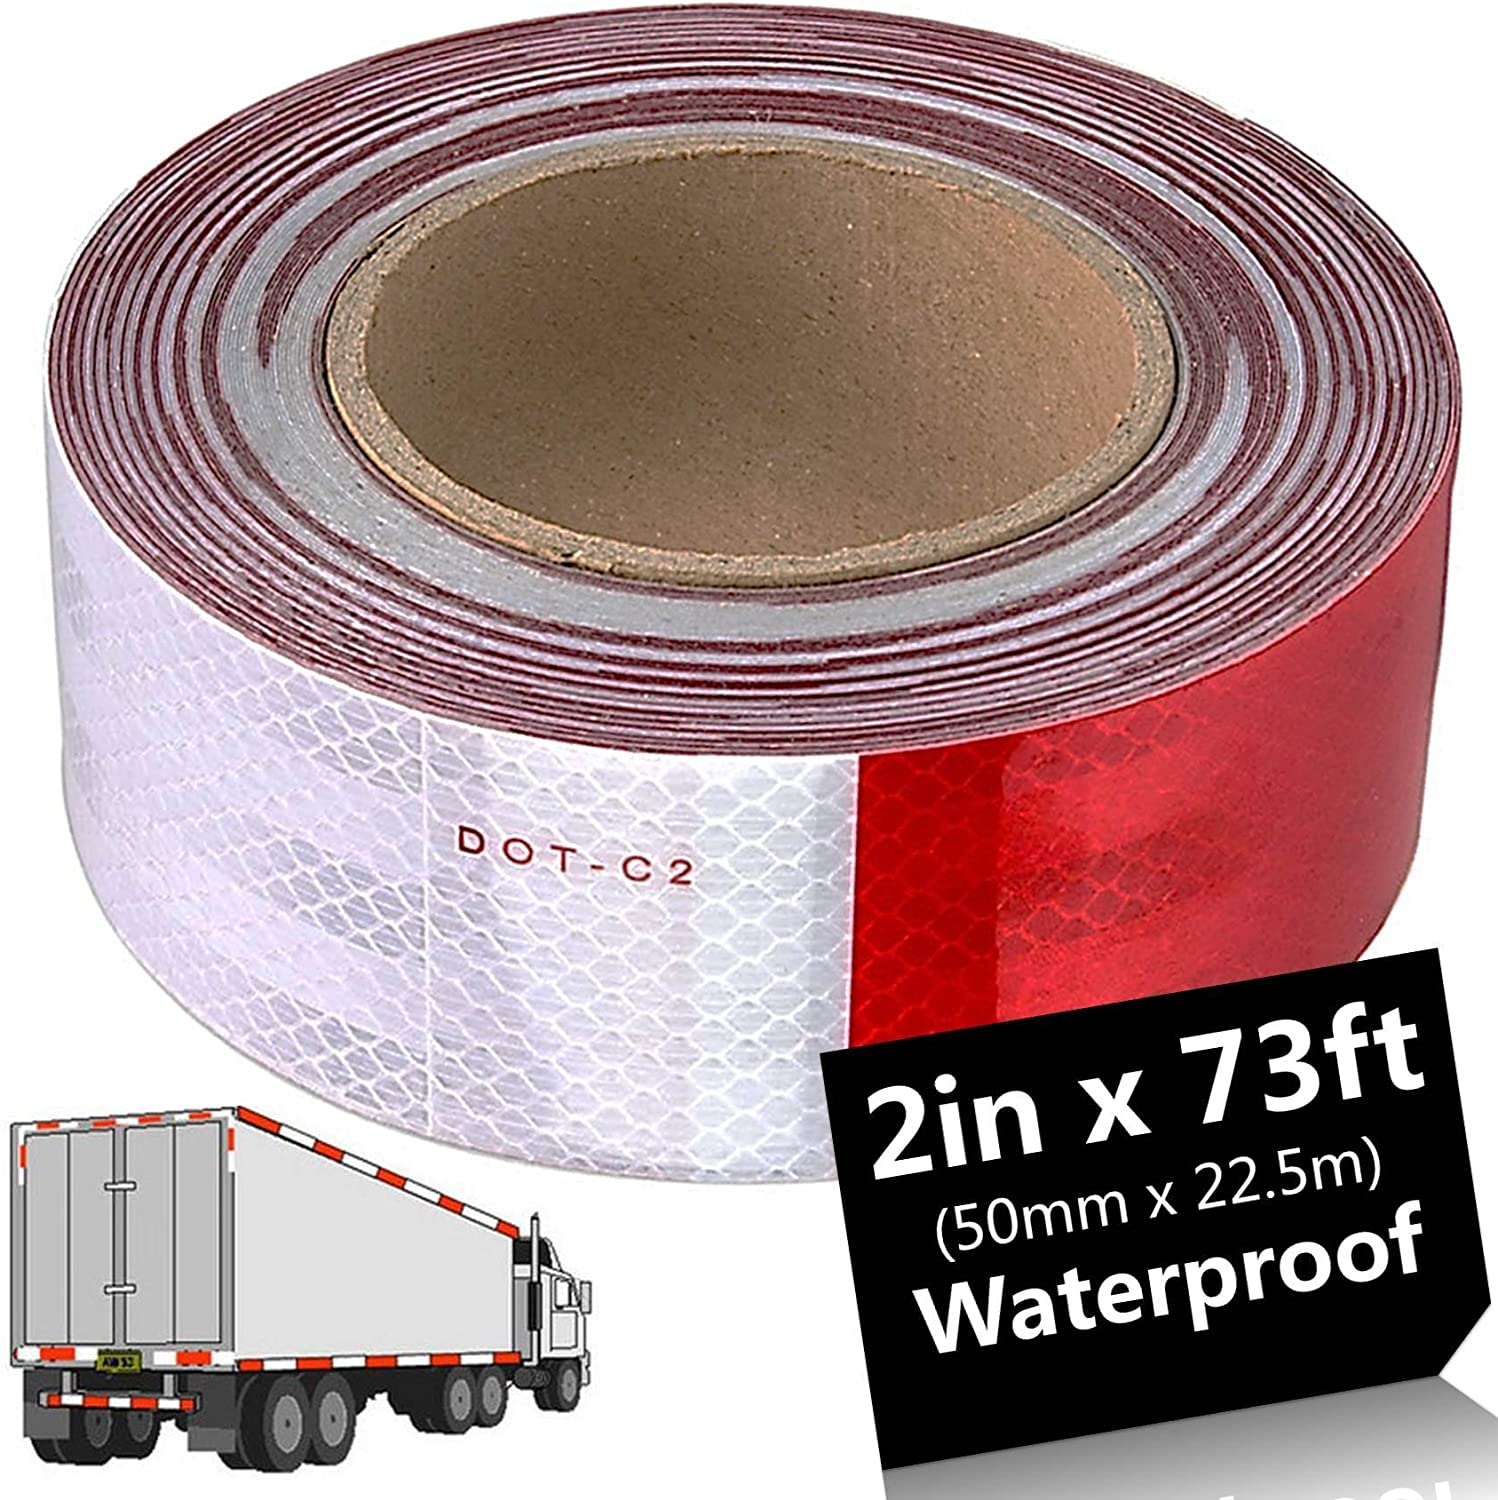 5 Piece of 50mm×150mm Red High Intensity Reflective Stickers Tape Self-Adhesive